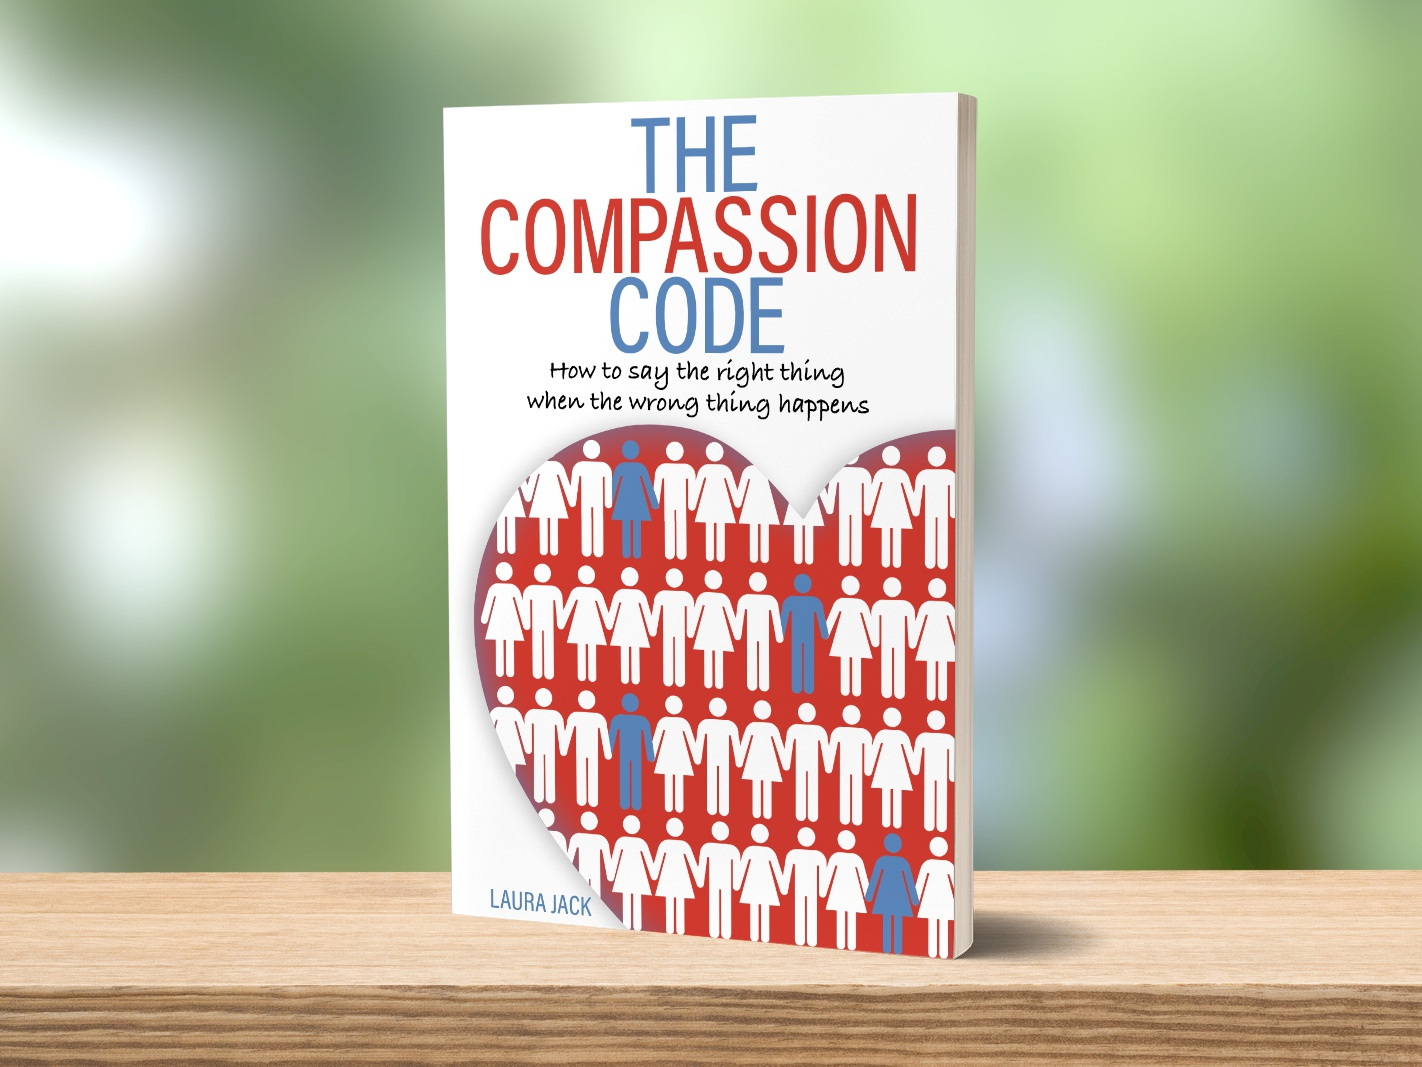 Thecompassioncode